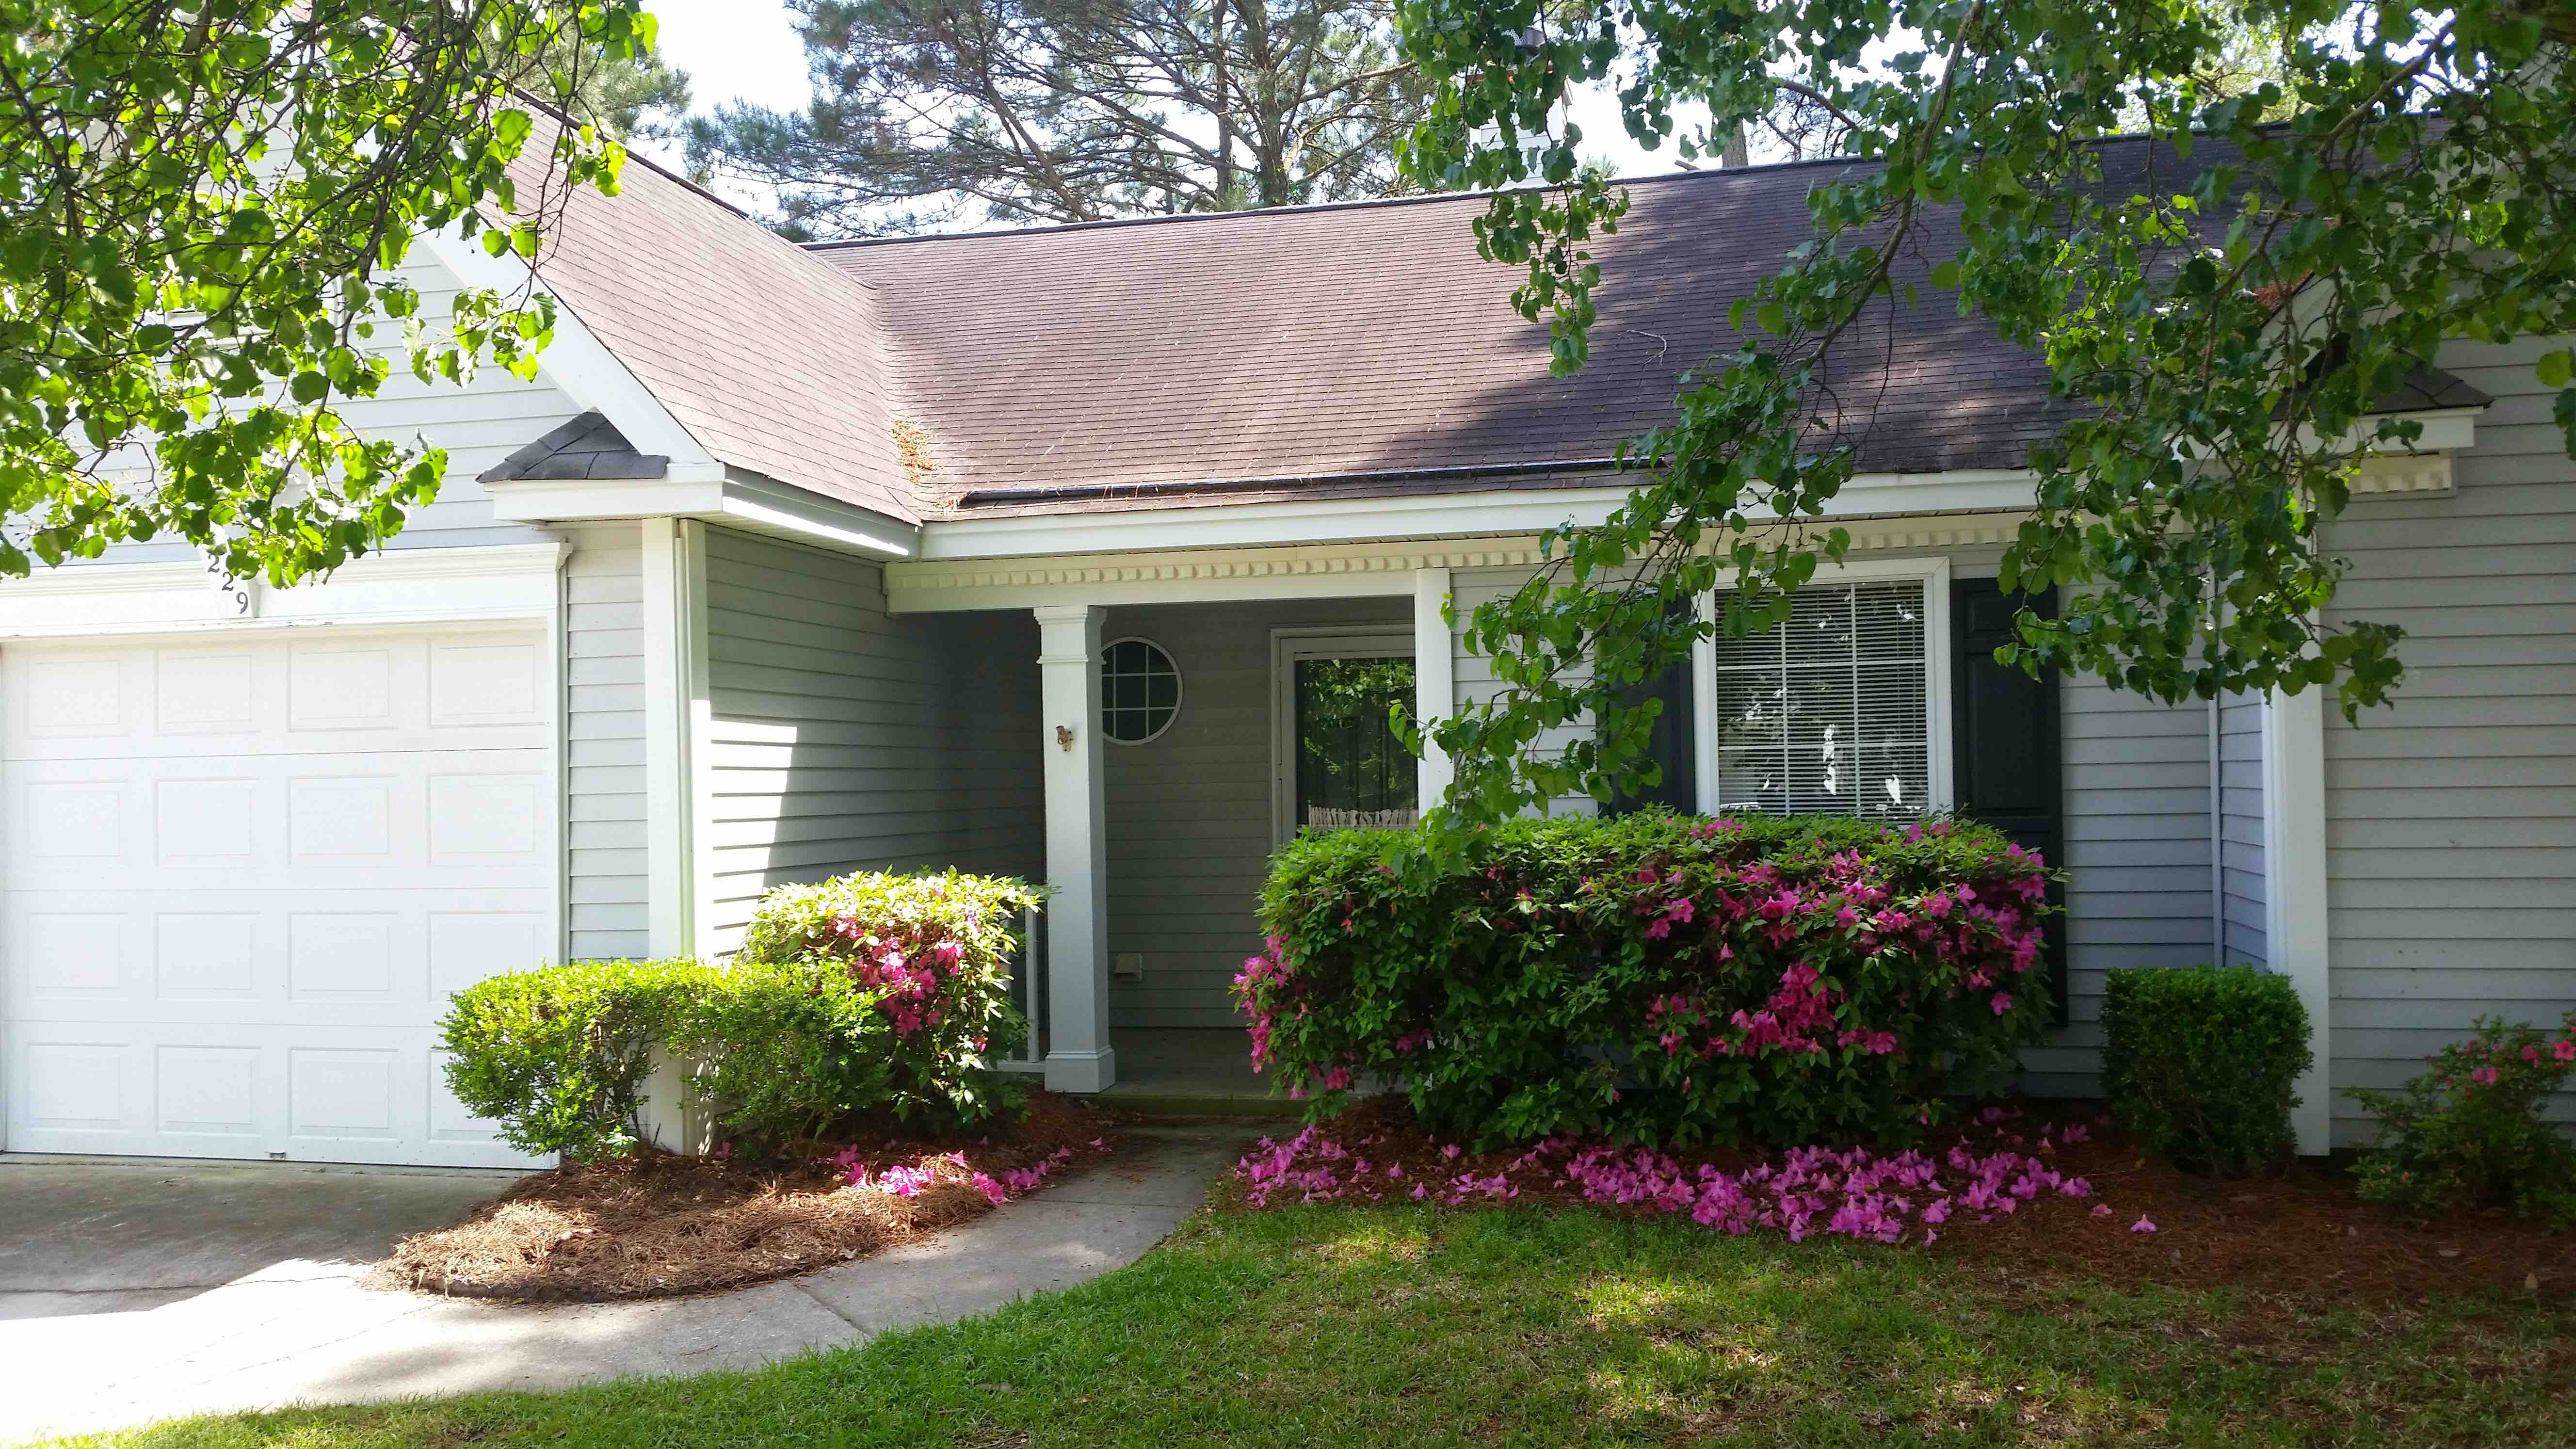 229 Mossy Oak Way, 3-br home for sale in Belle Hall Plantation, Mount Pleasant